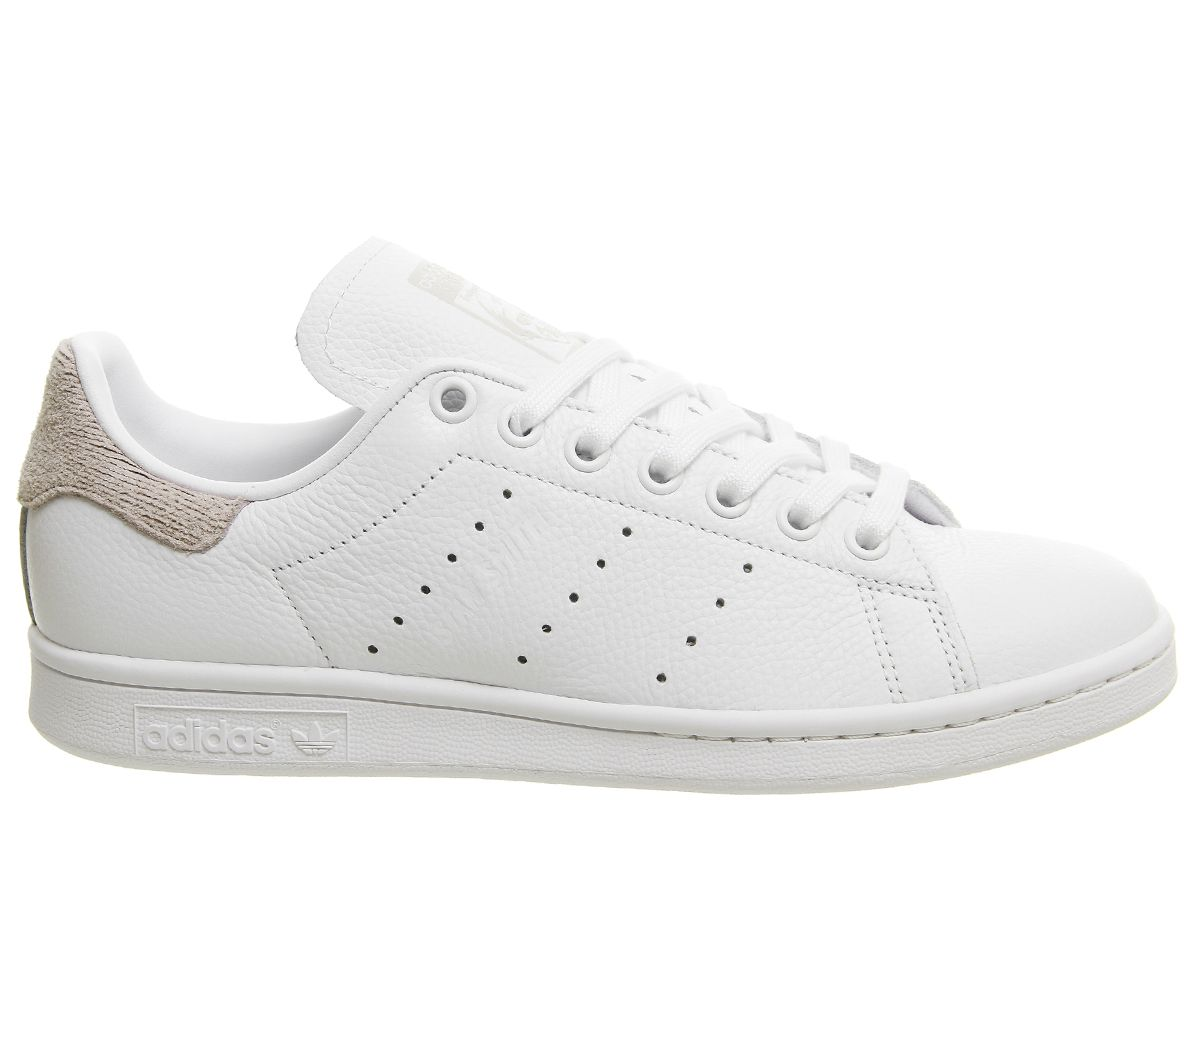 Short-Femme-Adidas-Stan-Smith-Baskets-White-Orchid-Tint-Baskets-Chaussures miniature 4